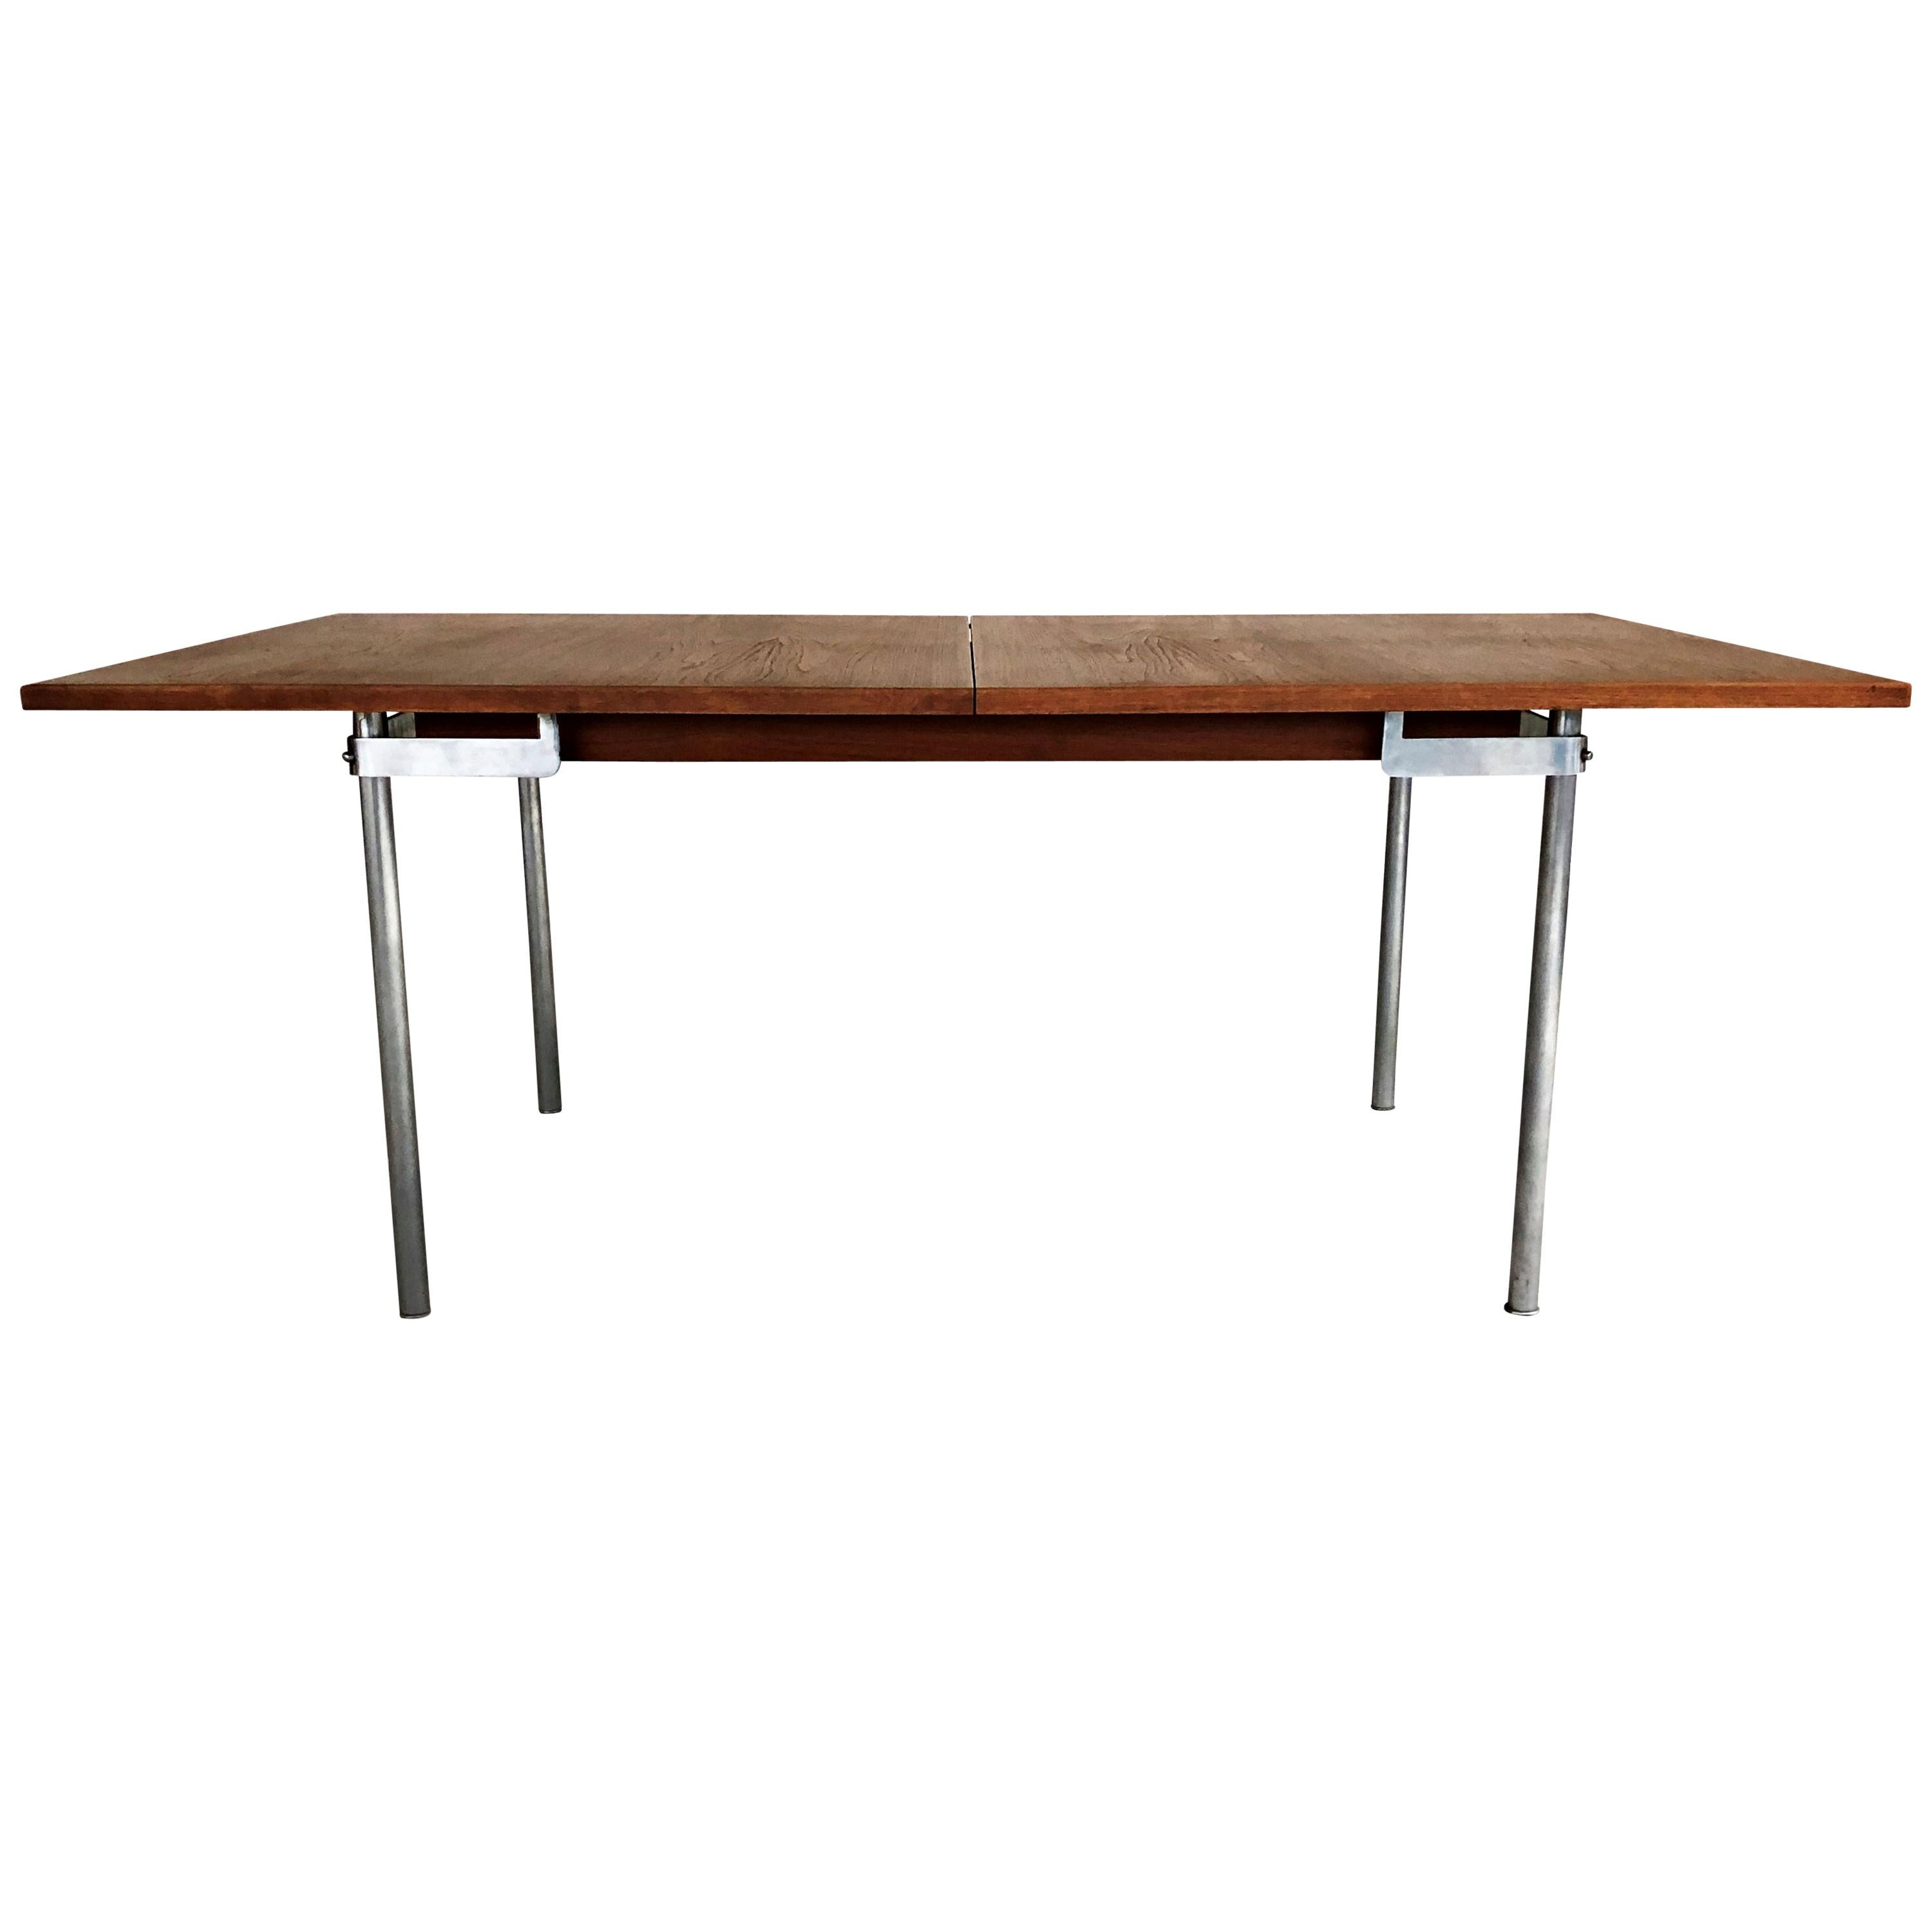 1960s Hans Wegner Refinished Extension Dining Table in Teak by Andreas Tuck